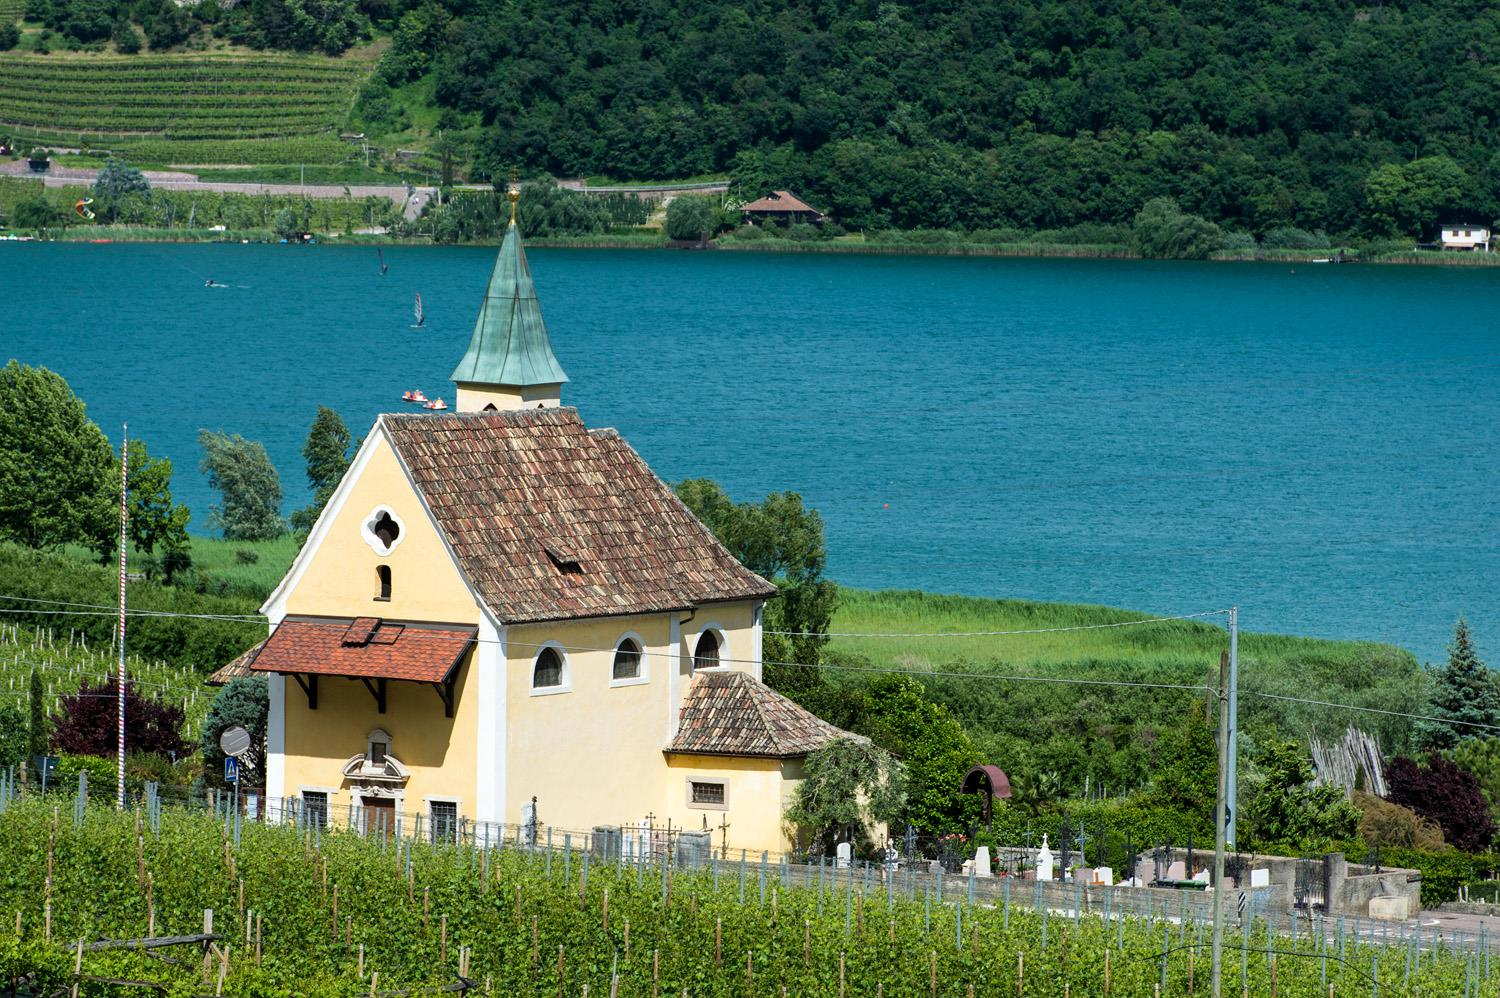 Church S. Giuseppe al lago/St. Josef am See